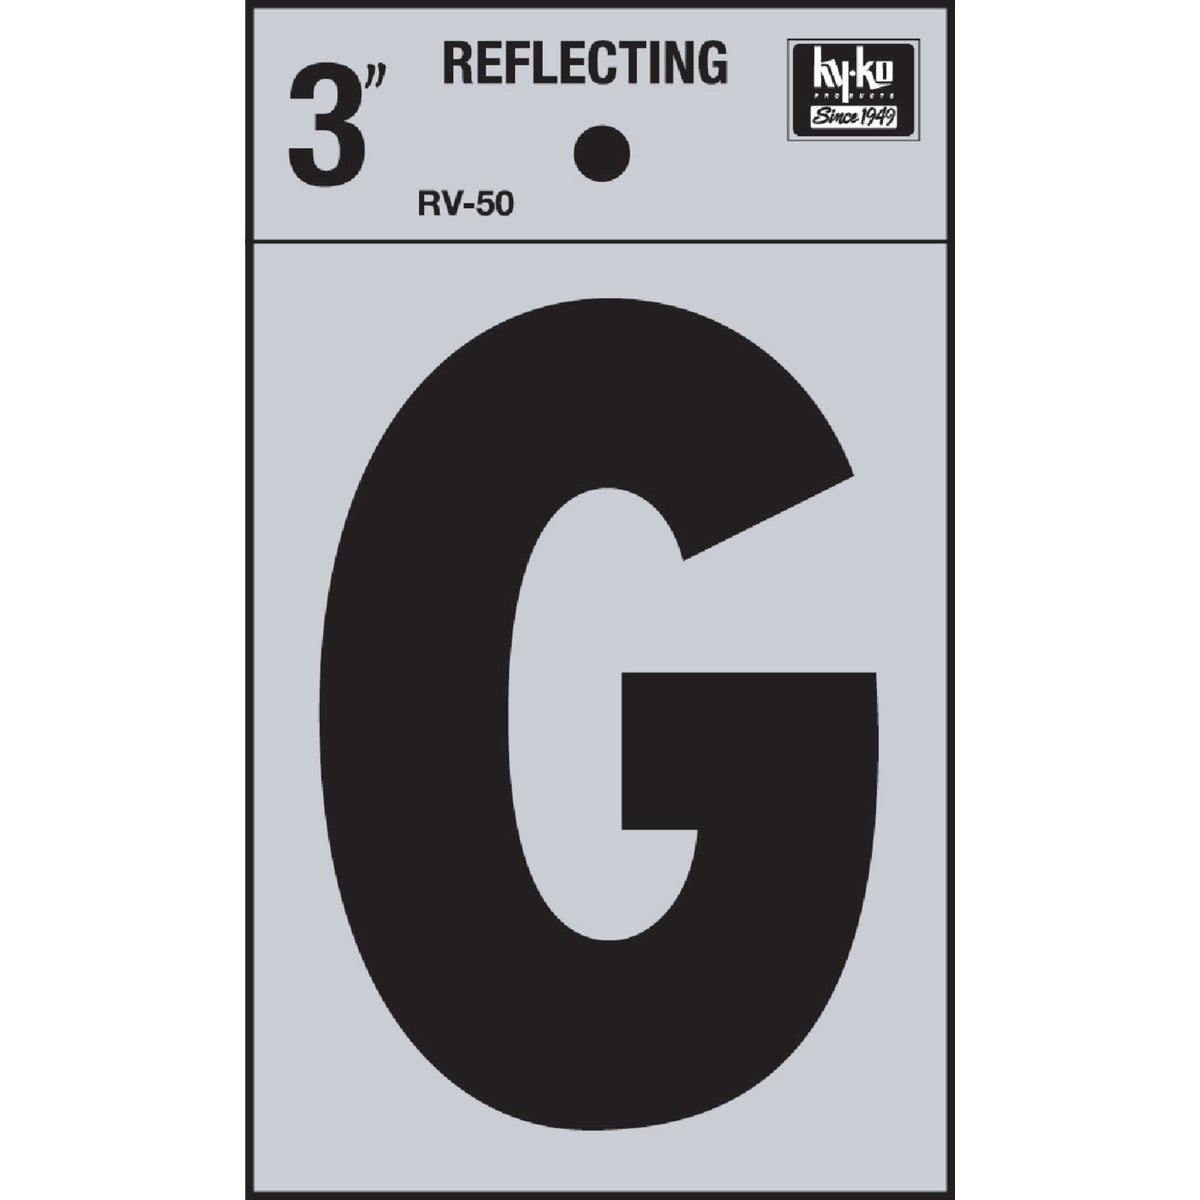 "3"" REFLECT LETTER G - RV-50G by Hy Ko Prods Co"